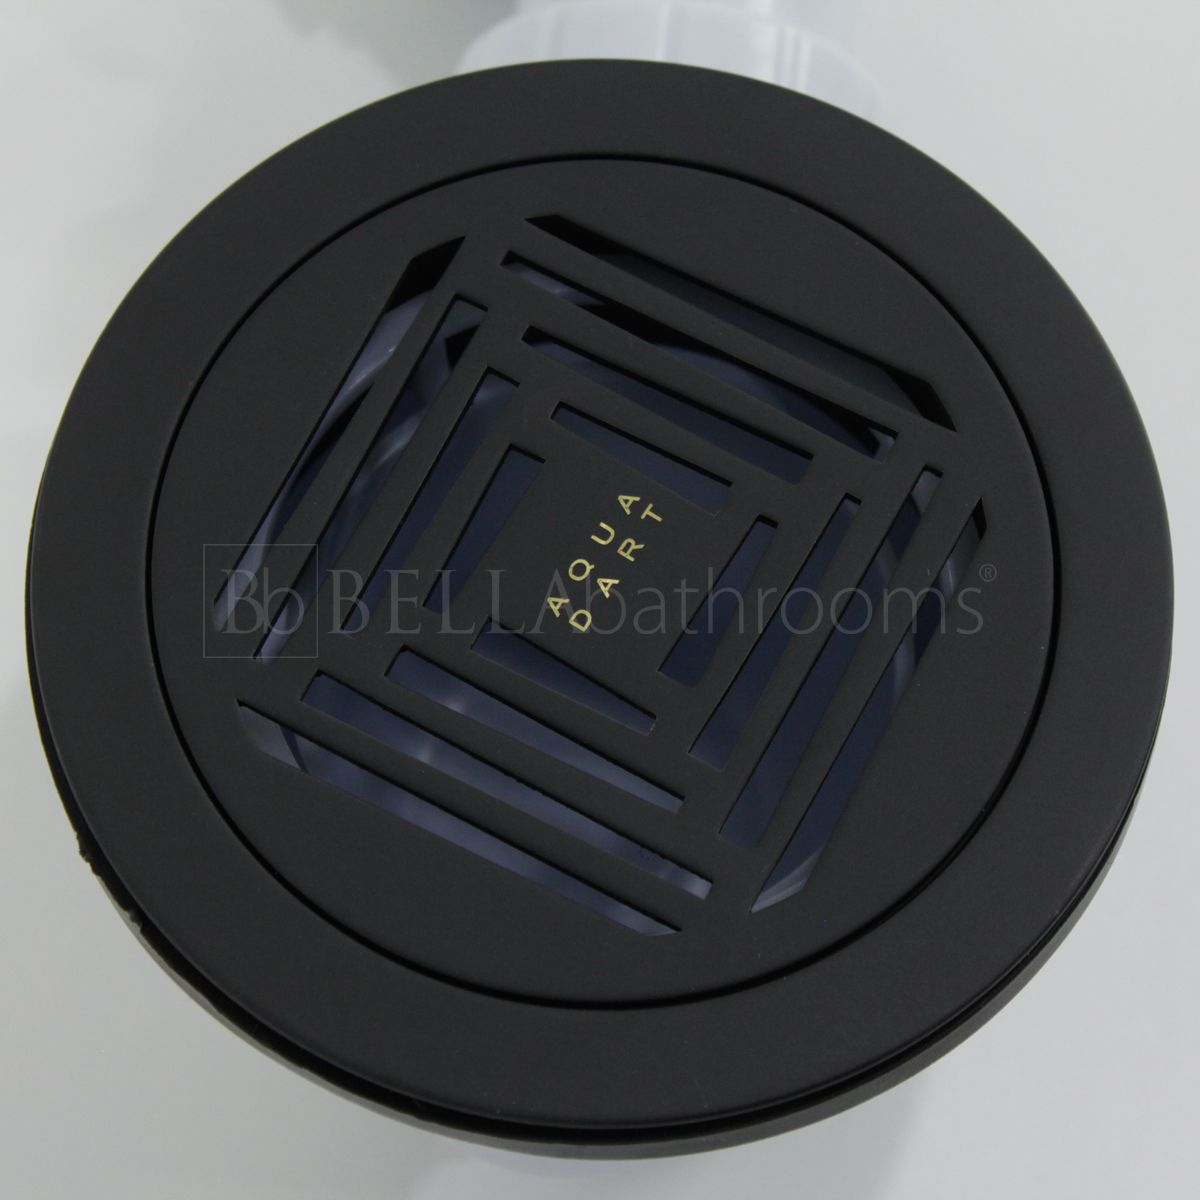 Aquadart 90mm Shower Waste with Black Grate Top